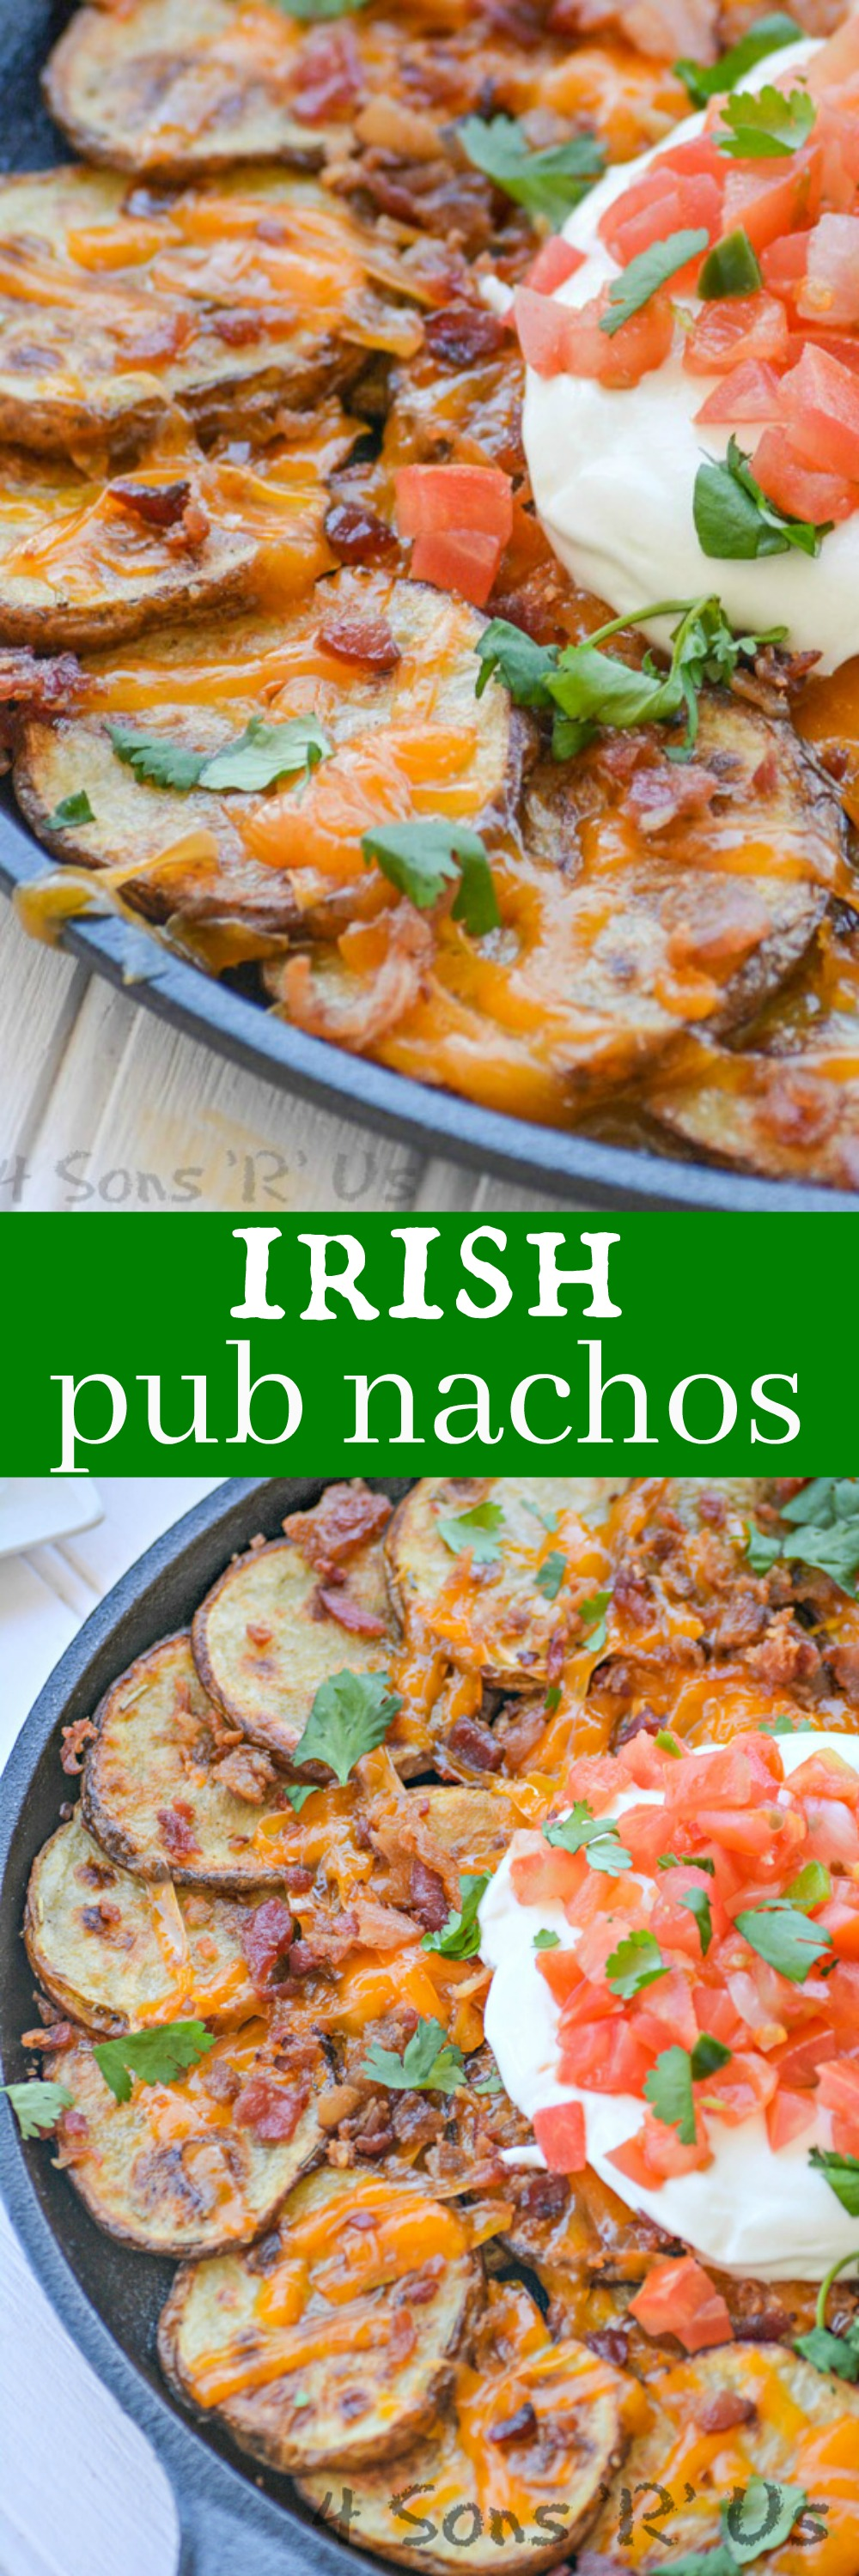 The Irish love their sports and their holidays, and if it's one thing they know- it's how to celebrate with good food. You're going to want these quick and easy, totally delectable Irish Pub Nachos at your next party.